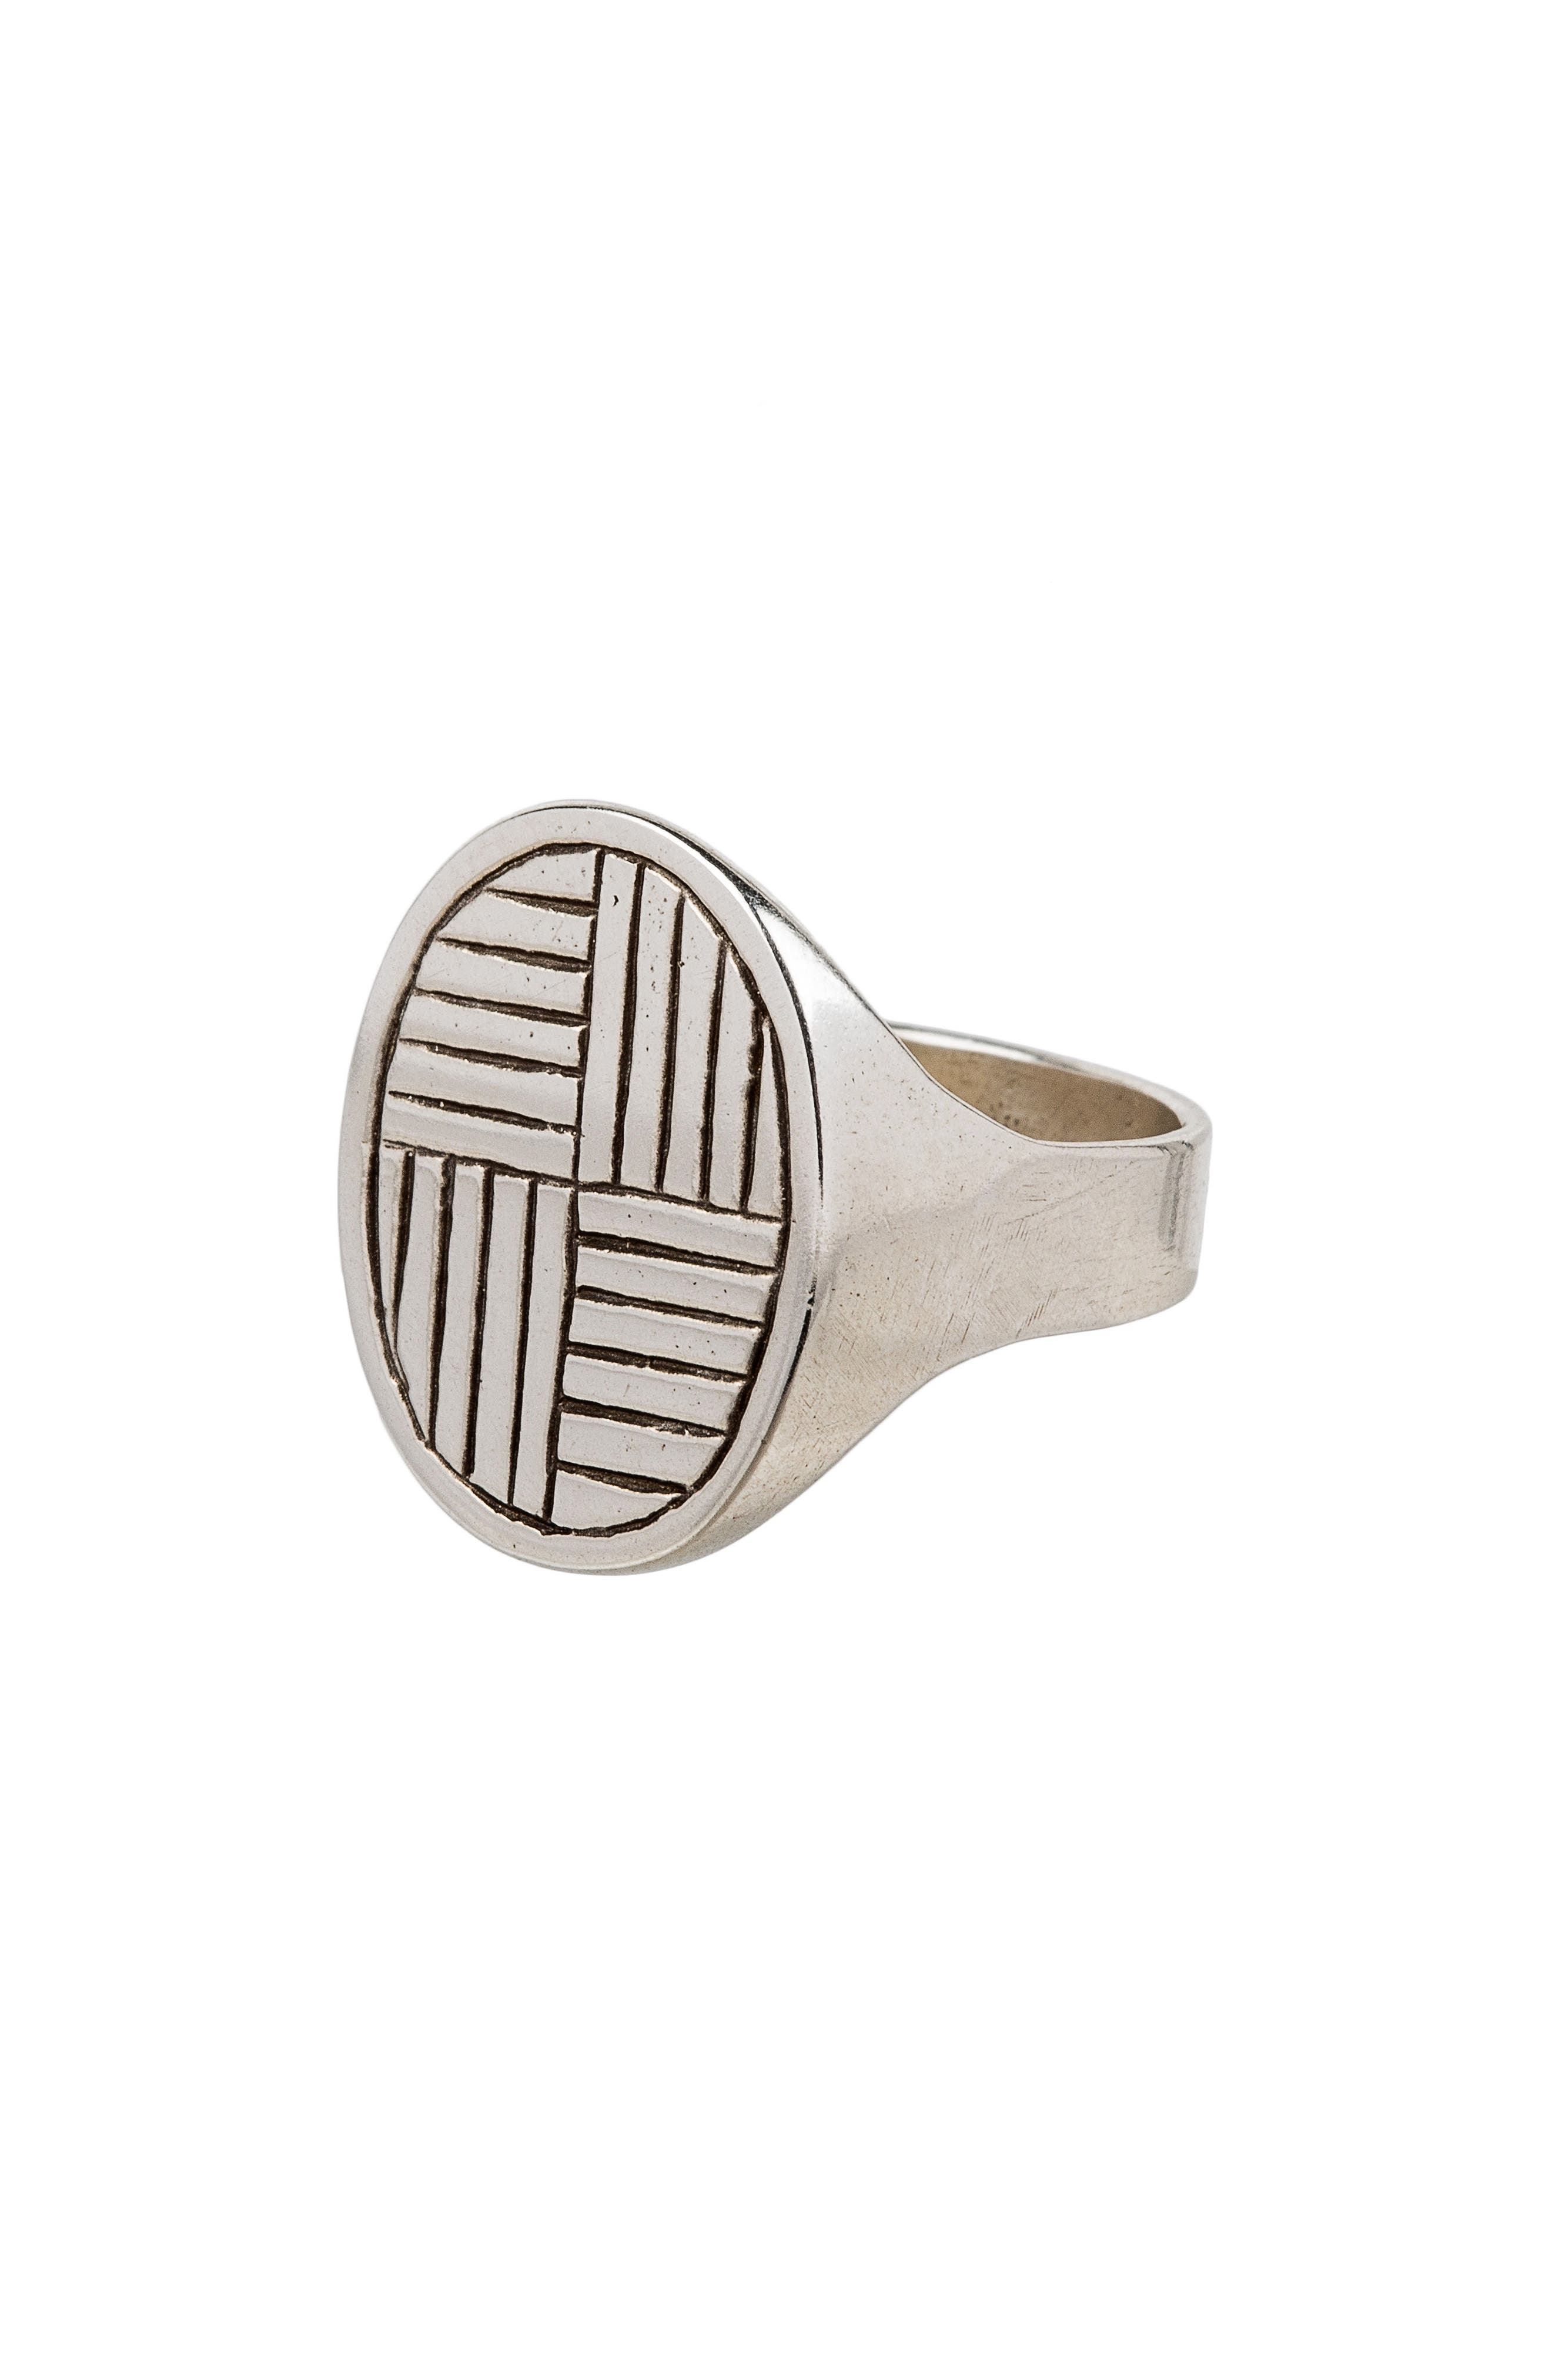 Ruskin Ring,                         Main,                         color, Silver